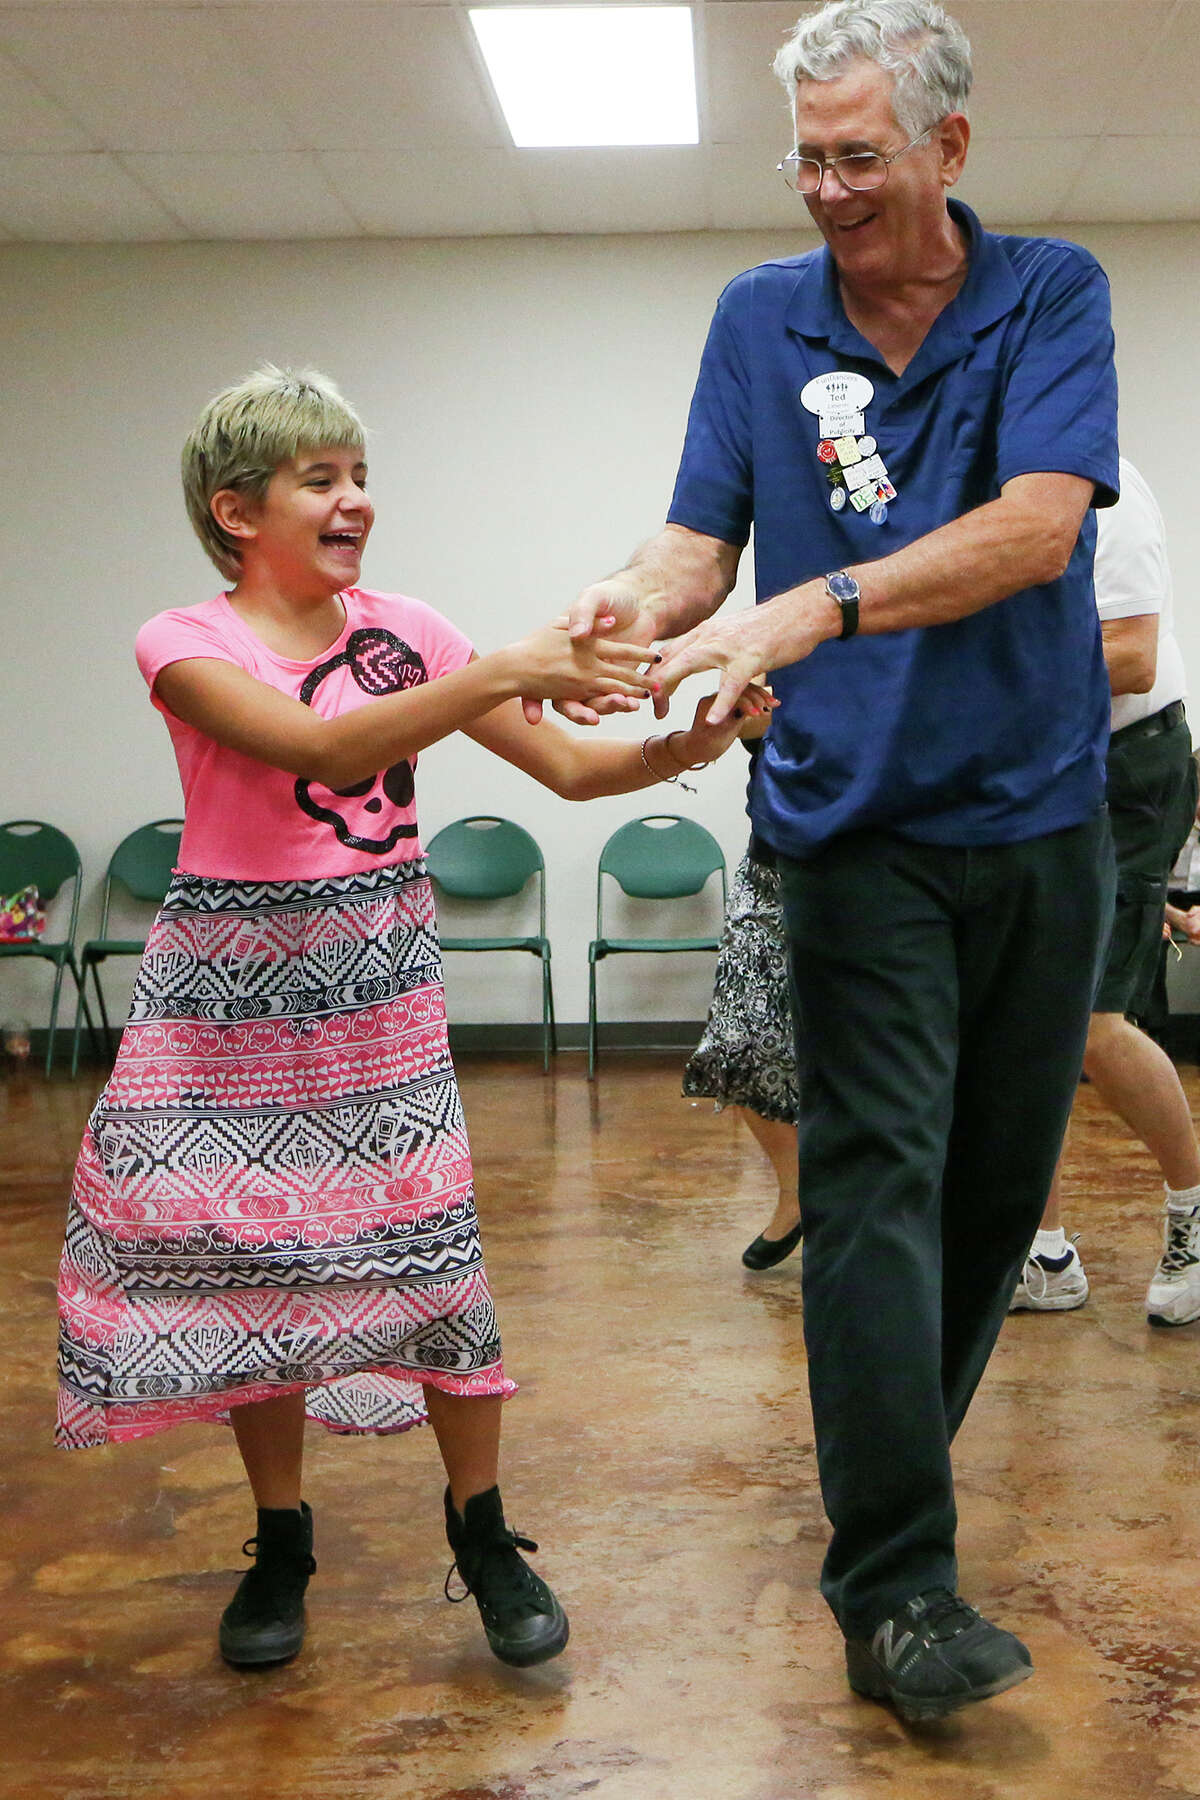 Twelve-year-old A.J. Kerr (left) dances with Ted Zahorski during the FunDancers' Square and Line Dancing Club dance at the Community Center North building in Schertz on Sunday, Sept. 7, 2014. MARVIN PFEIFFER/ mpfeiffer@express-news.net